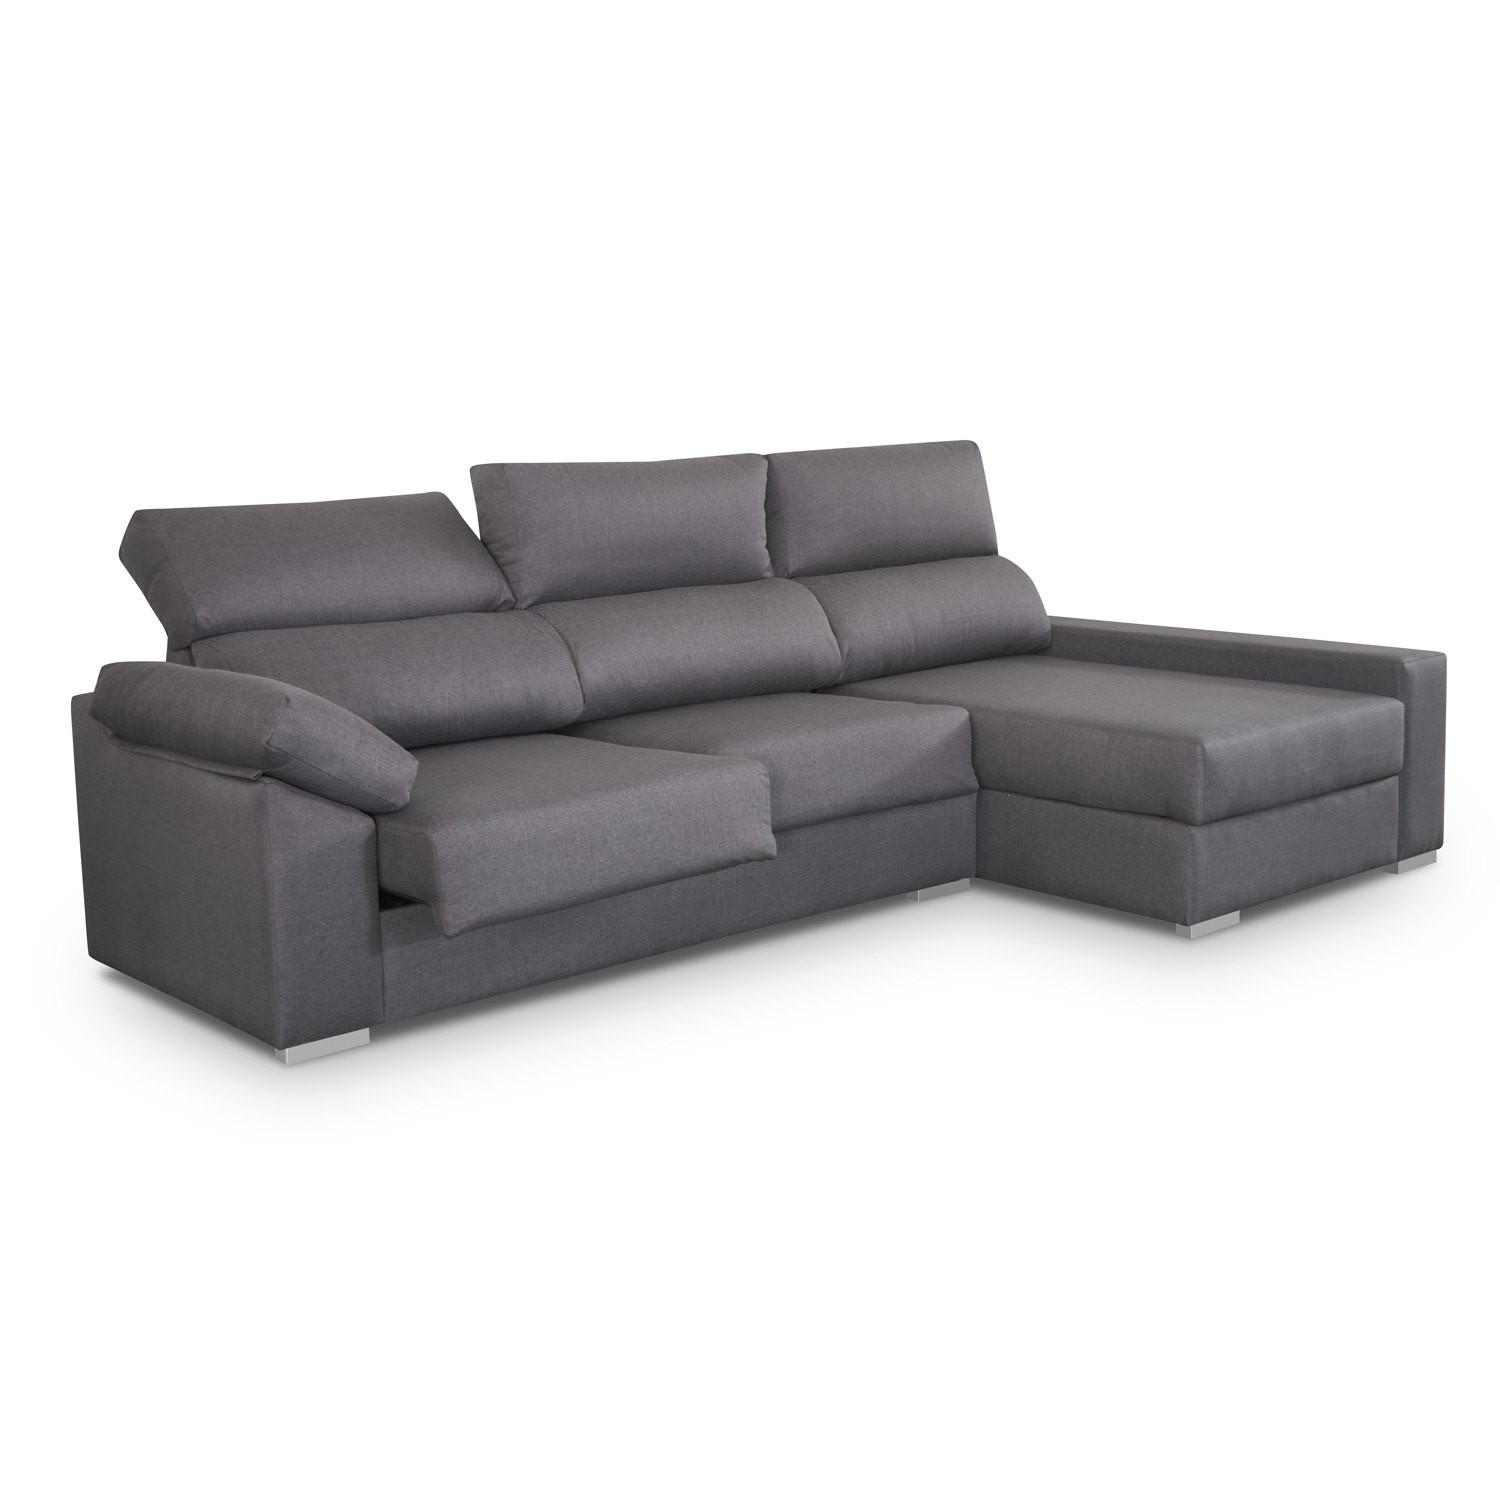 Oferta sofa Chaise Longue Arriba Erta sofa Chaise Longue Of 41  Encantador Oferta sofa Chaise Longue